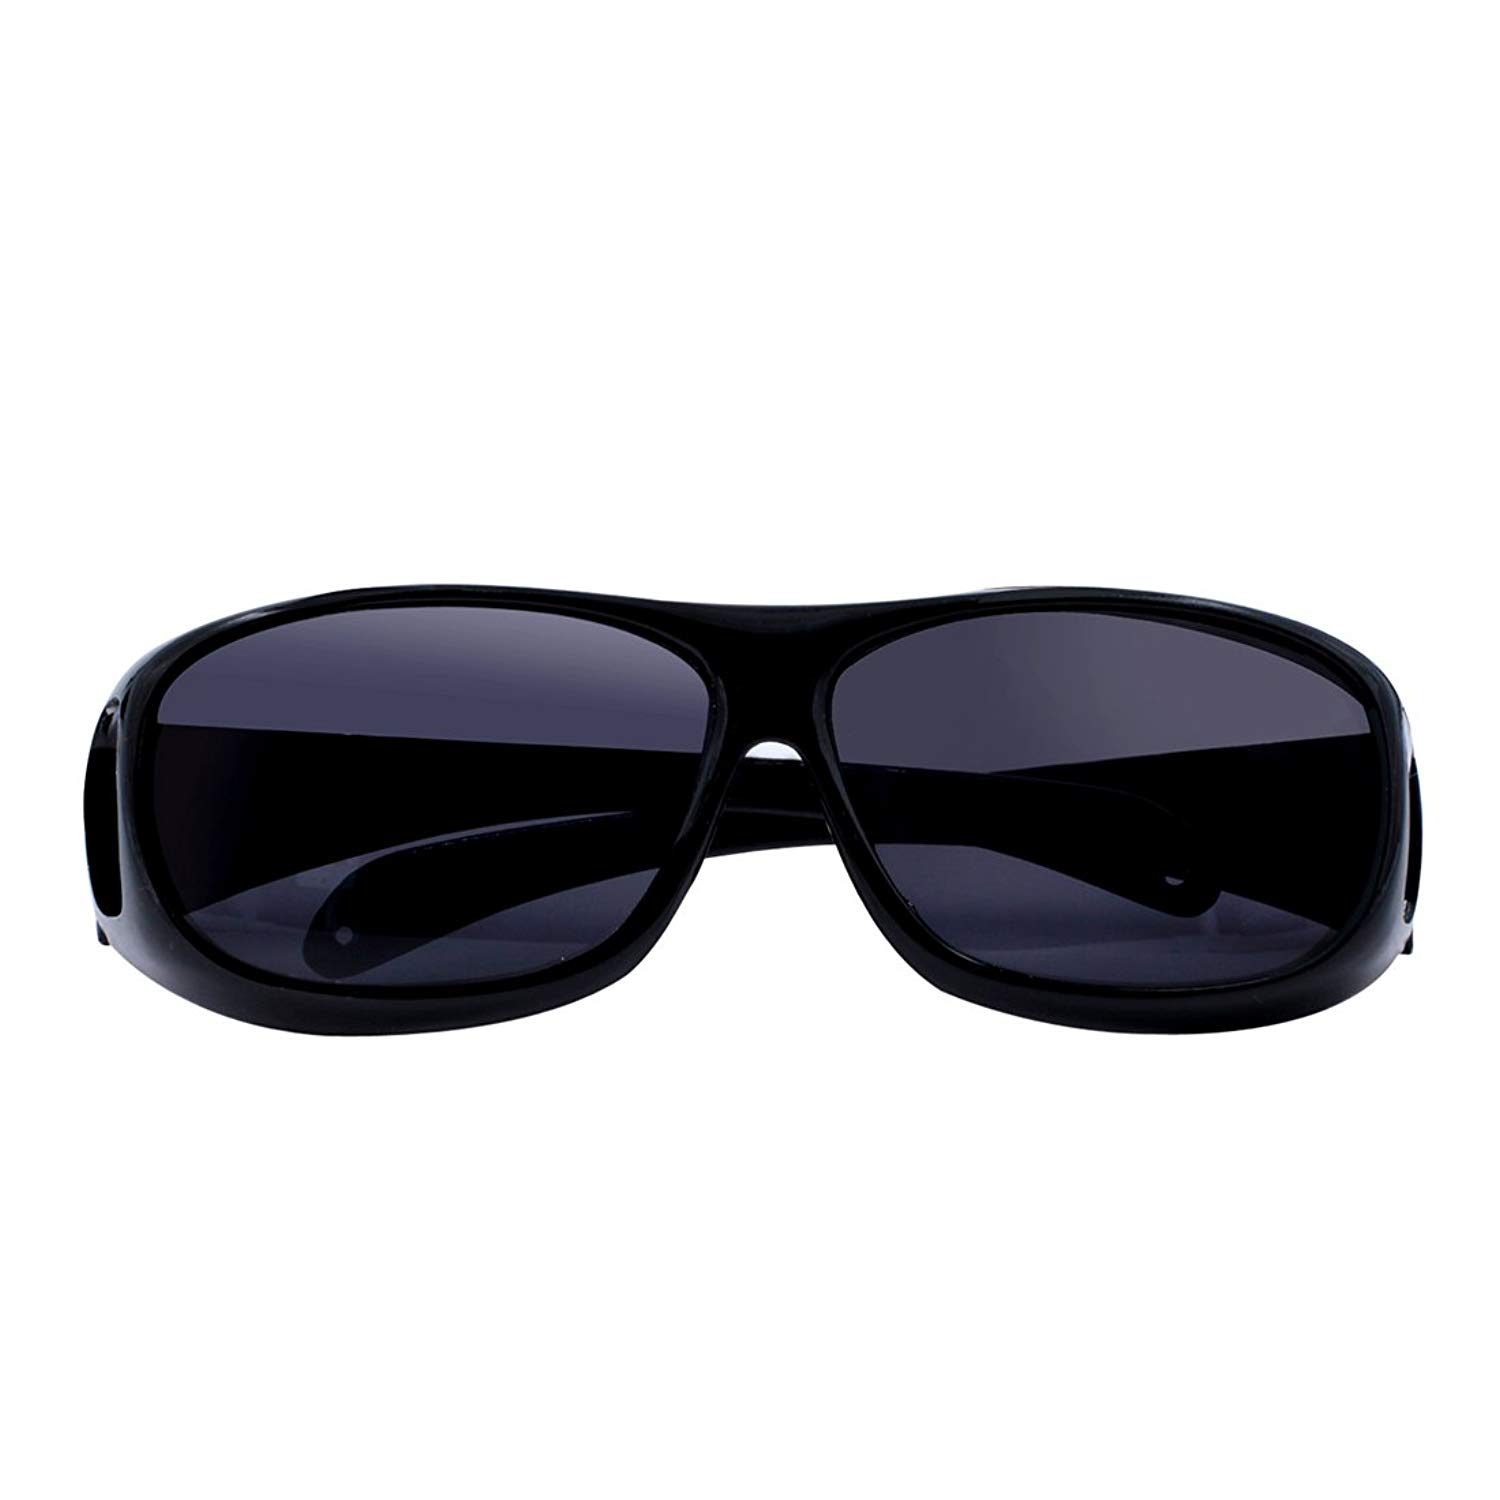 163e4469392 Get Quotations · Unisex HD Night Vision Driving Sunglasses